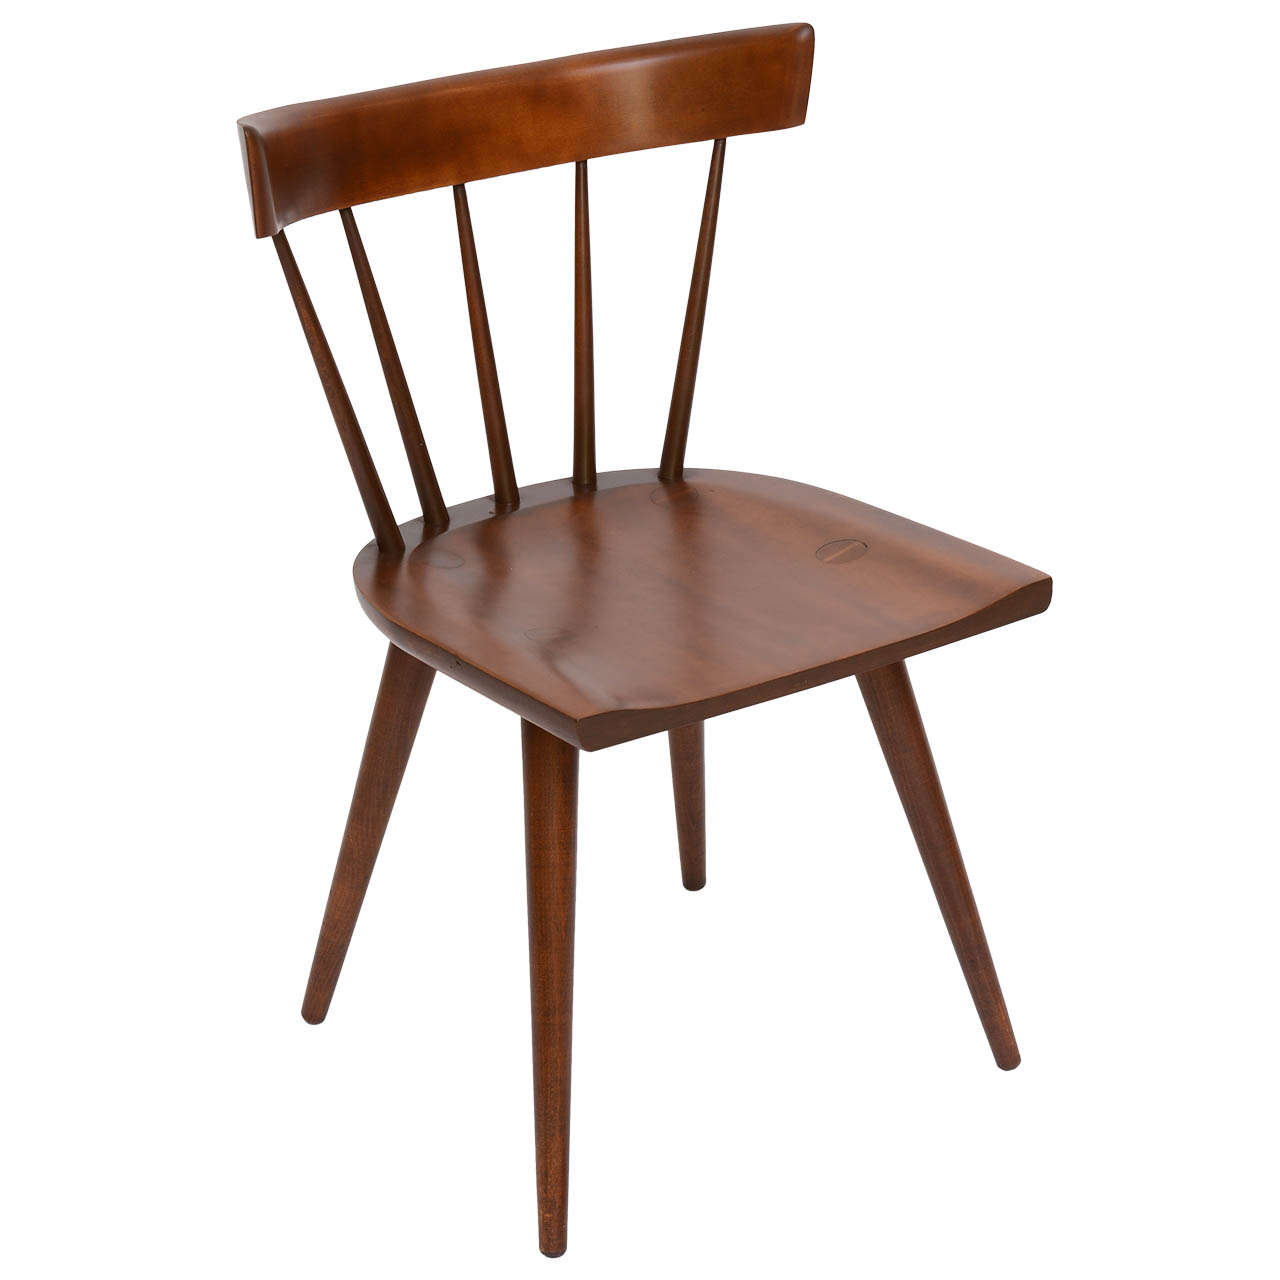 Single Paul McCobb Spindle Back Chair In Dark Maple For Sale